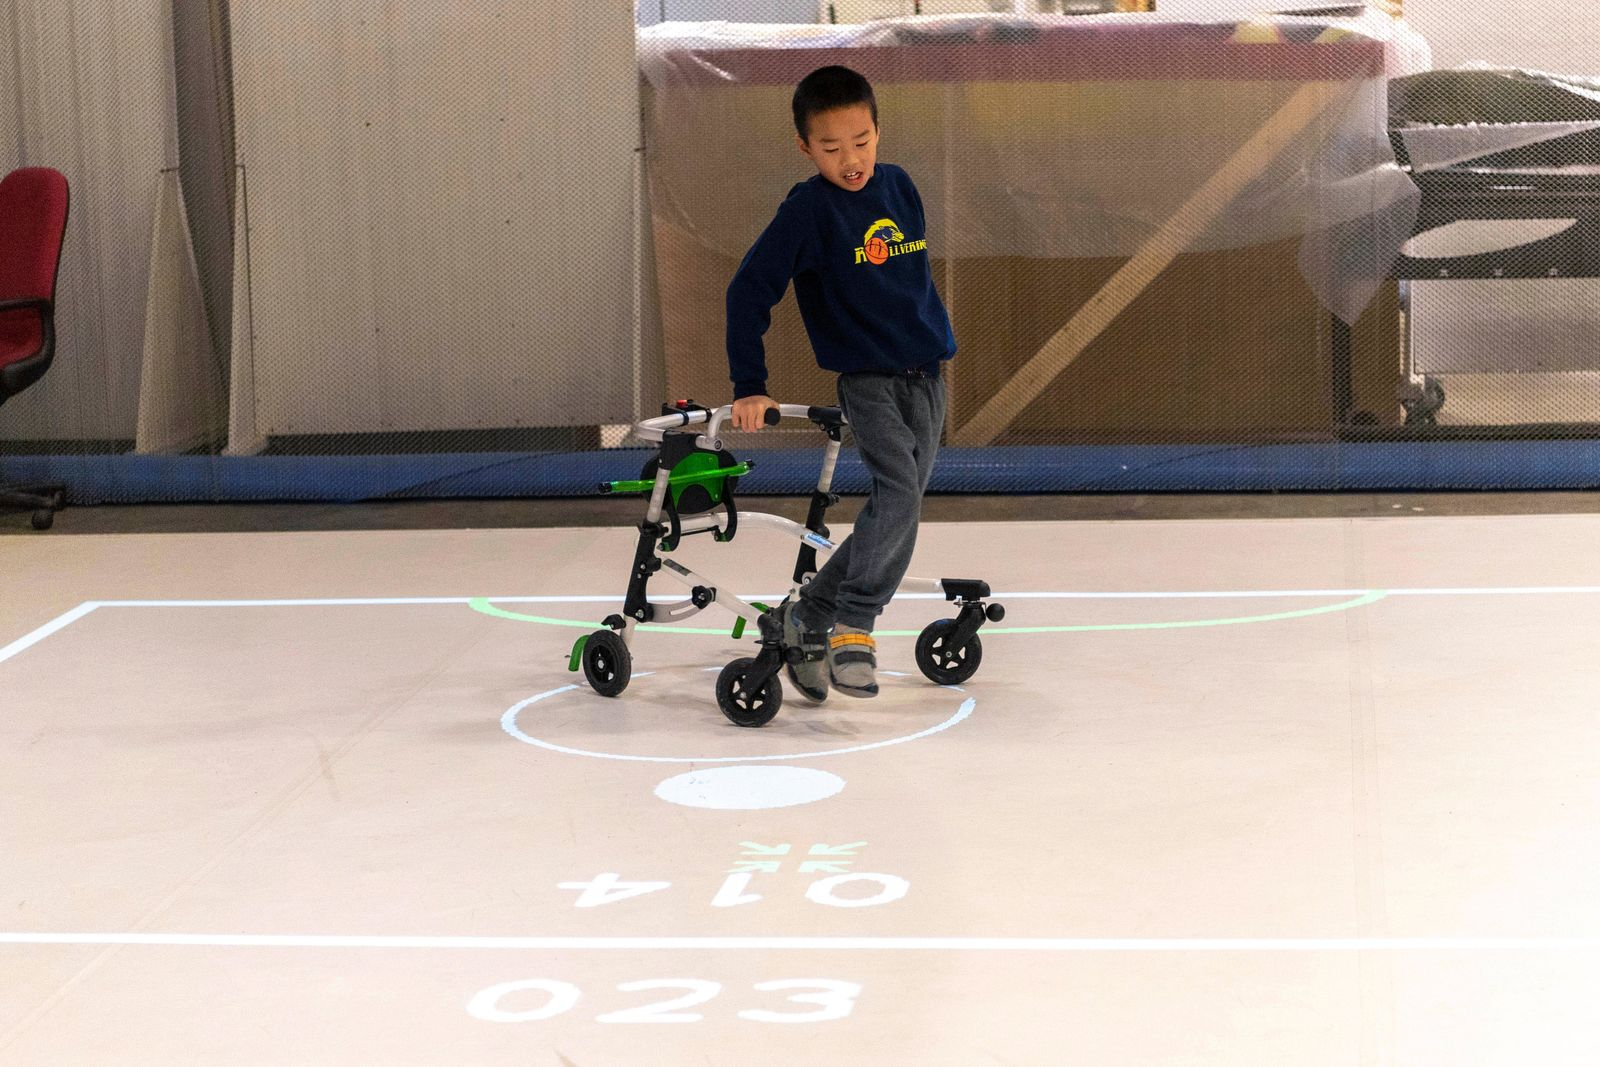 In this Nov. 17, 2019, photo provided by the University of Michigan, Bryan Kreps plays a game modeled after soccer and air hockey using the iGYM system at the university in Ann Arbor, Mich. A University of Michigan research team has created iGYM, an augmented reality system that allows people with different levels of mobility to play and exercise together. (Roger Hart/University of Michigan via AP)